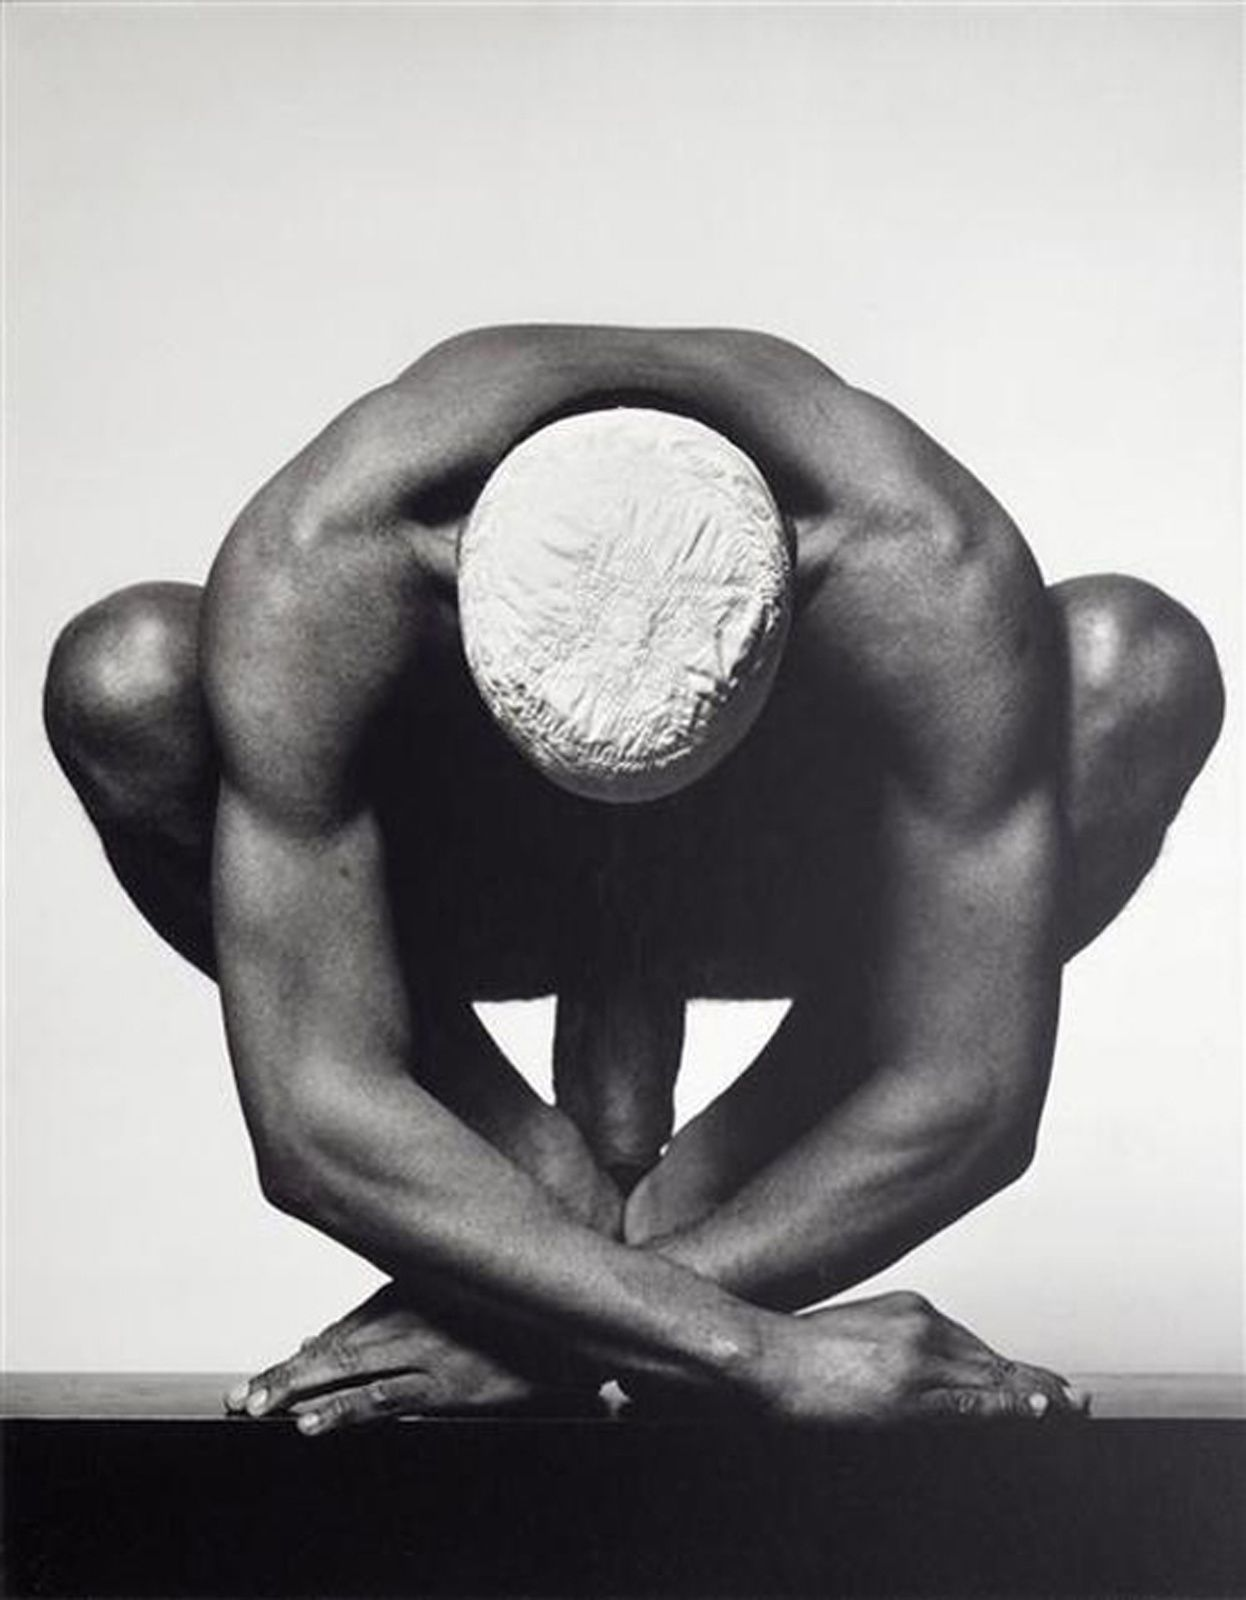 """Jimmy ""Jason"", 1983 Freeman"", 1981 de Robert Mapplethorpe - Courtesy Gallerie Ropac © Photo Éric Simon"